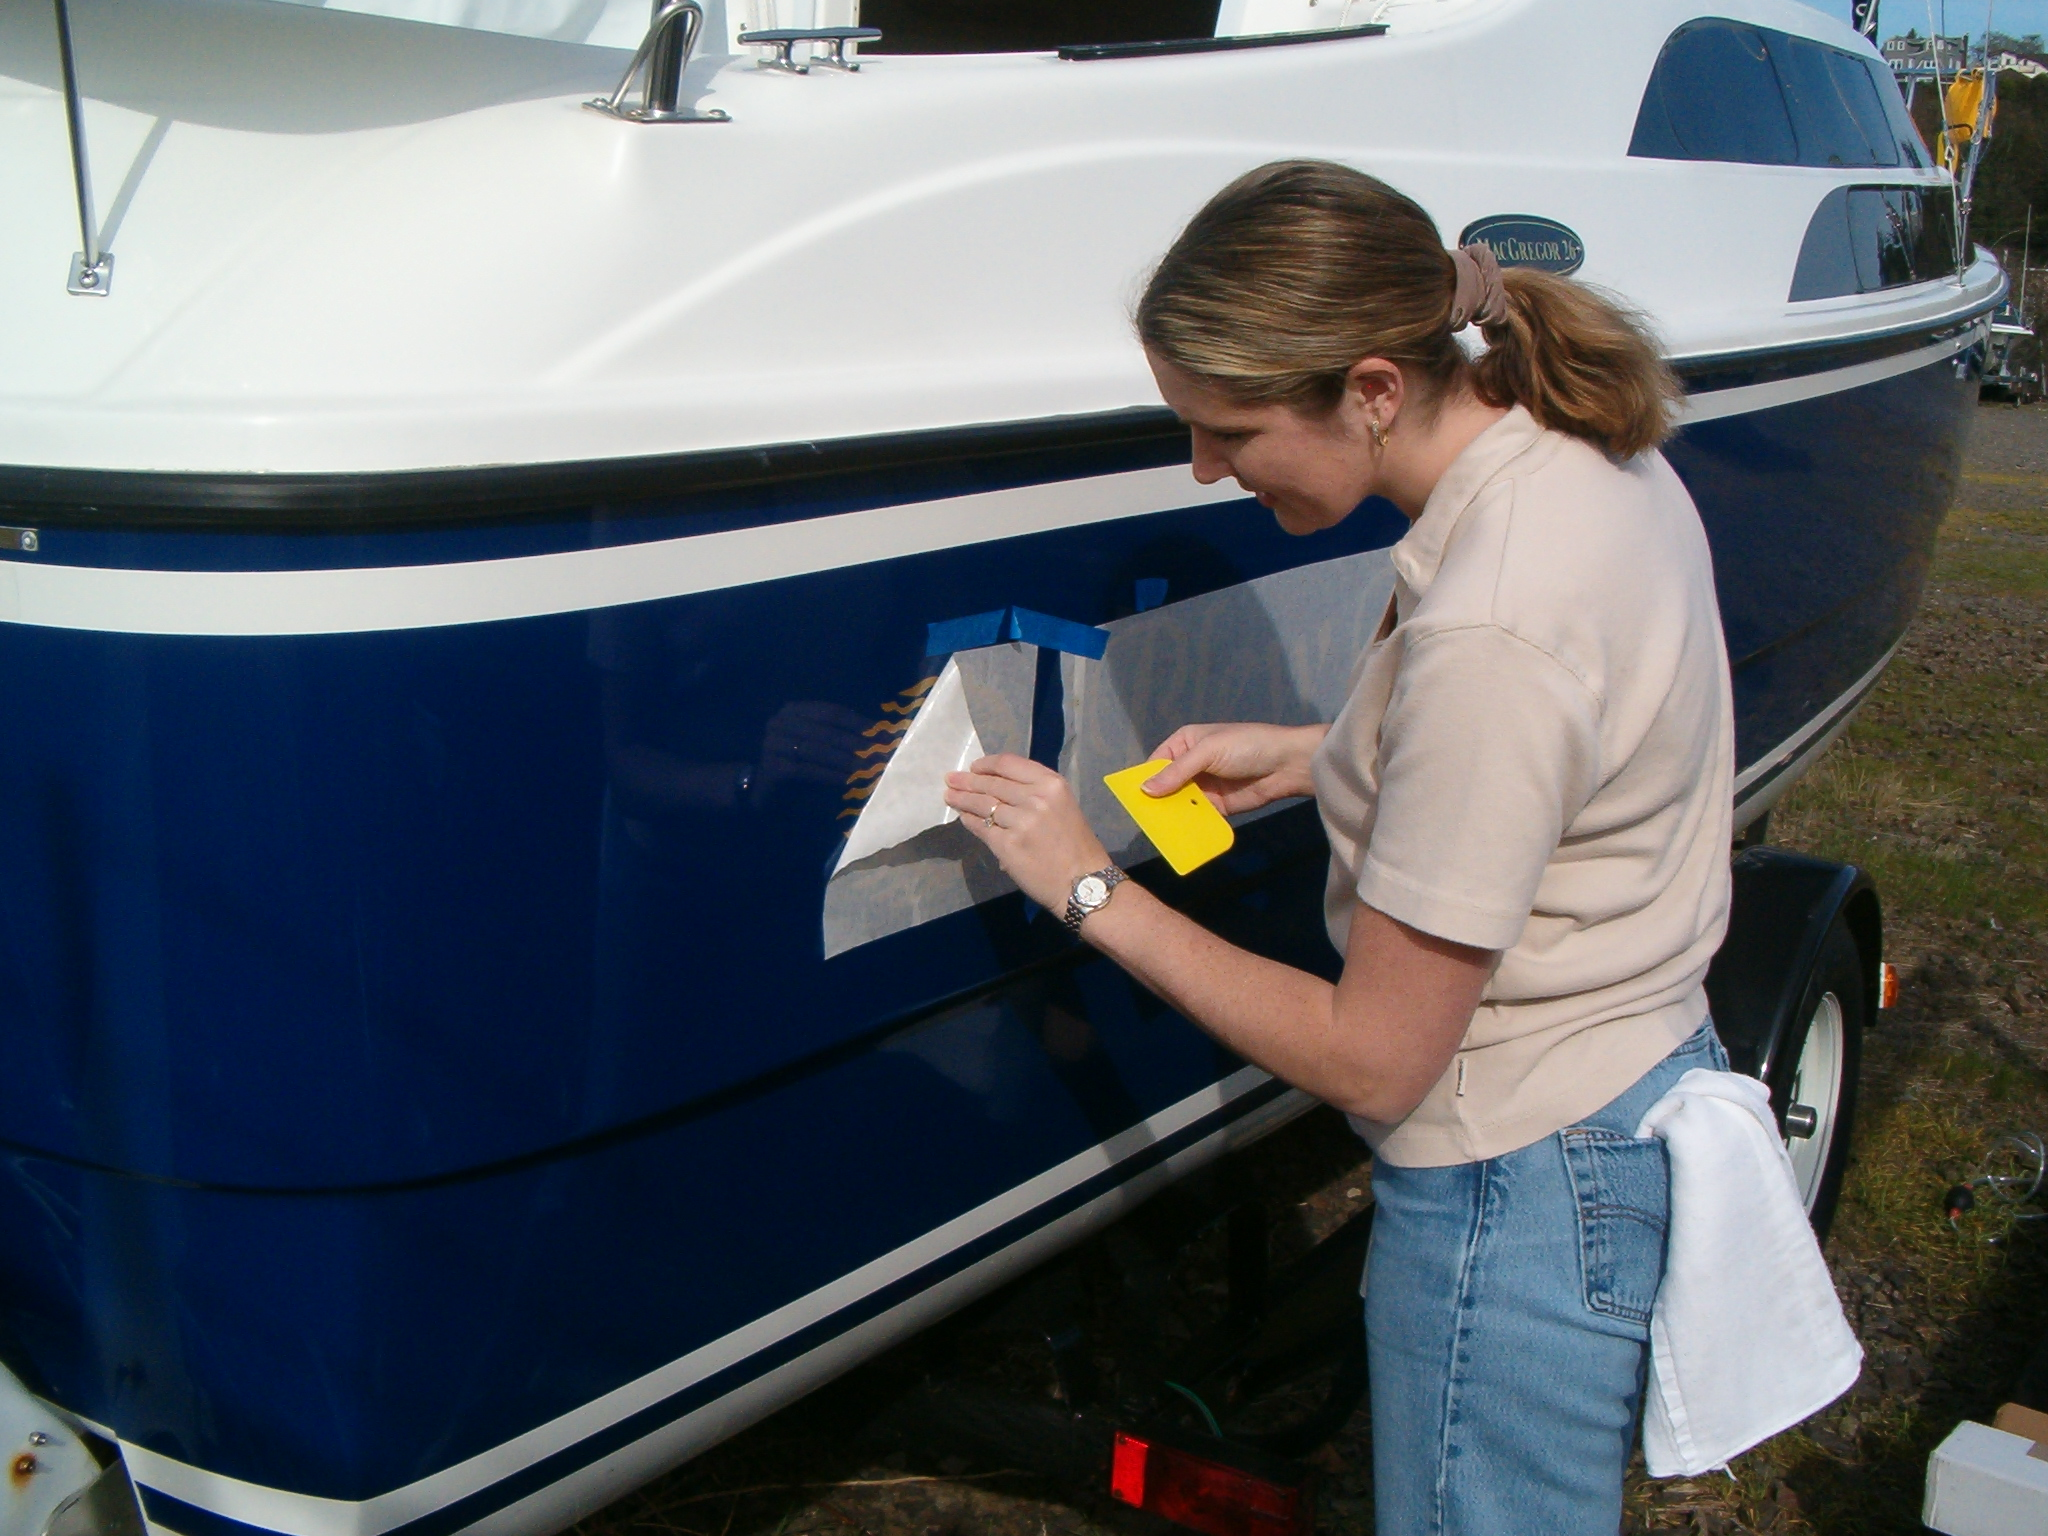 How to Remove Boat Decals - Boat Life